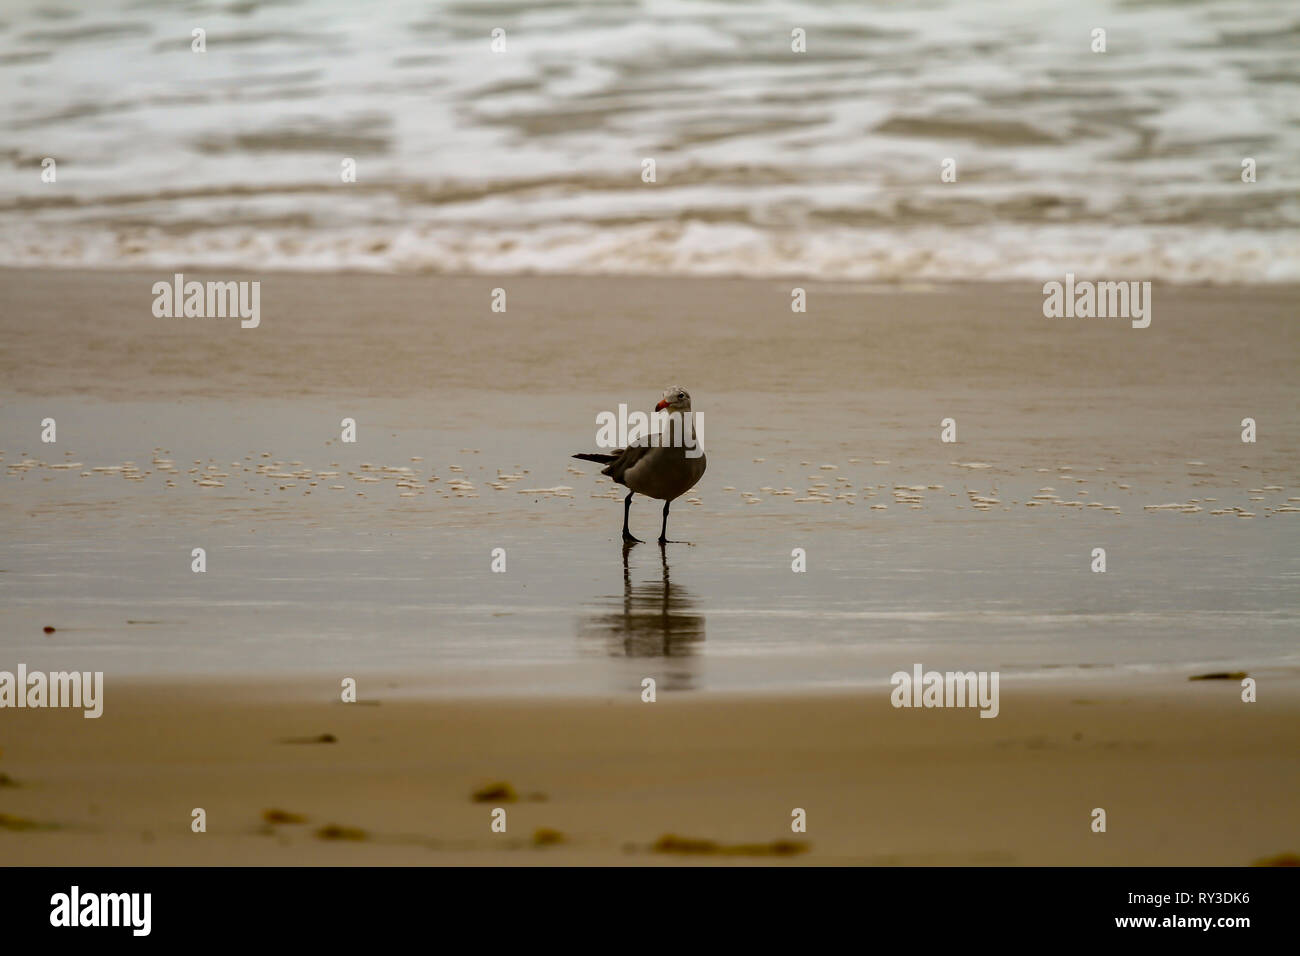 Seagull foraging in shallow water on a sandy beach with gentle surf casting a reflection on the wet sand - Stock Image